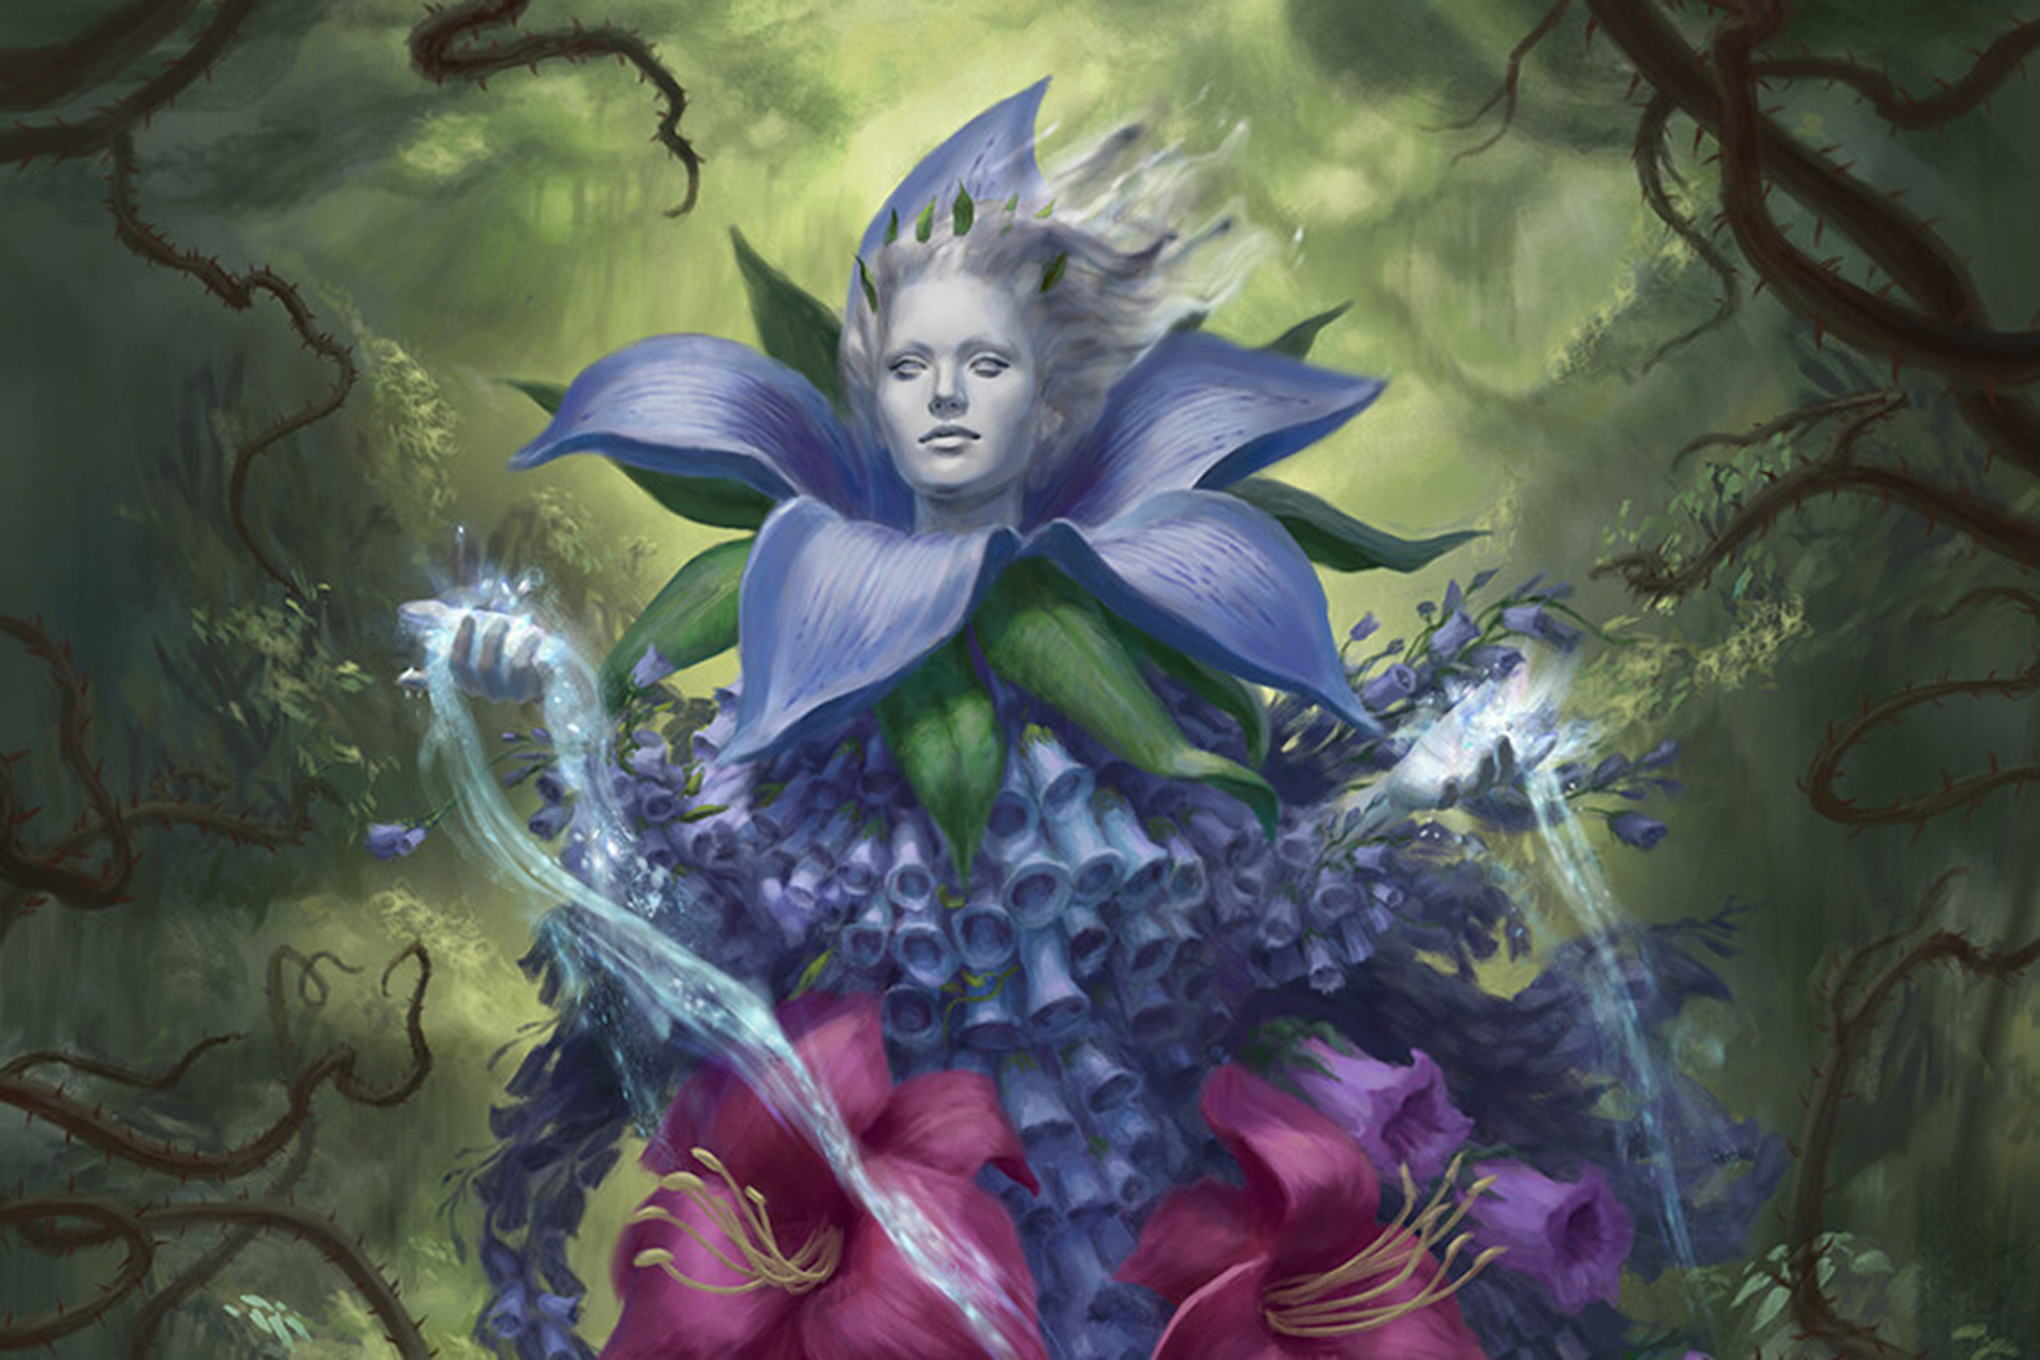 Art for Oona, Queen of the Fae shows a purple woman emerging from a giant flower on a green background. Blue mana spills from her hands like pollen.